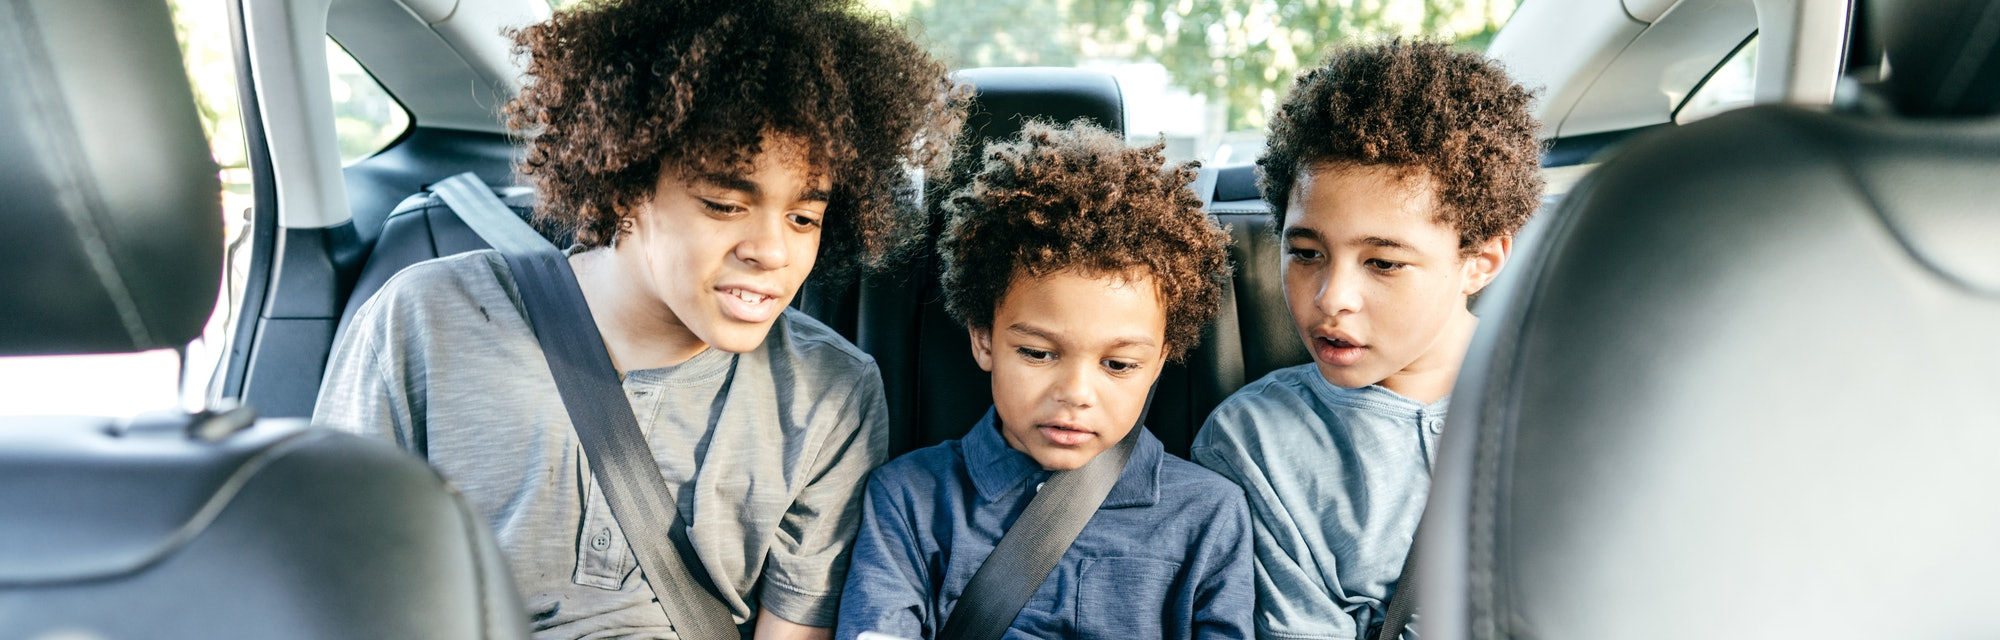 three brothers in backseat of car